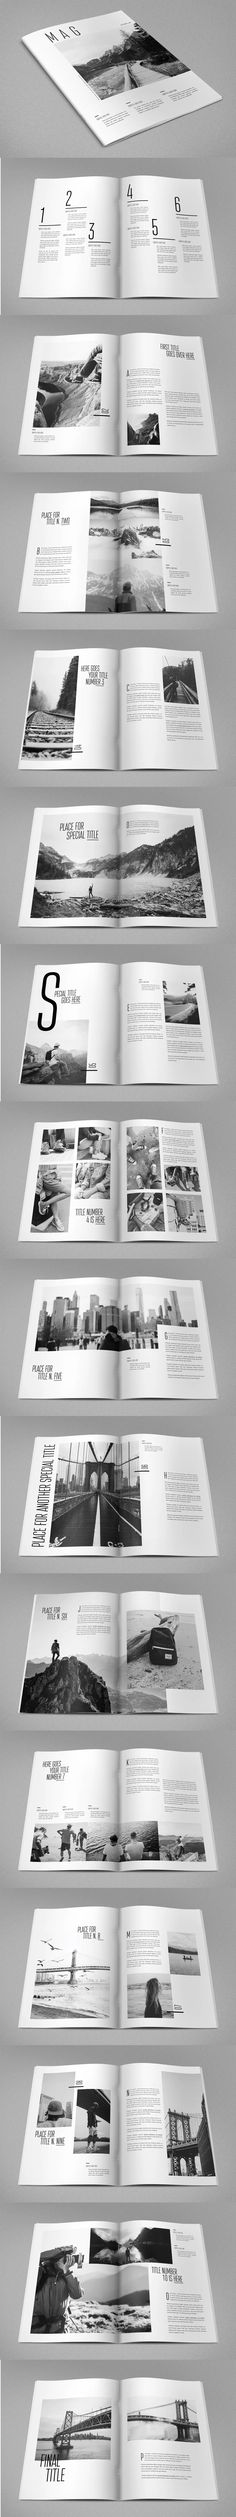 Cool Minimal Photography Magazine Template InDesign INDD - A4 and US Letter Size